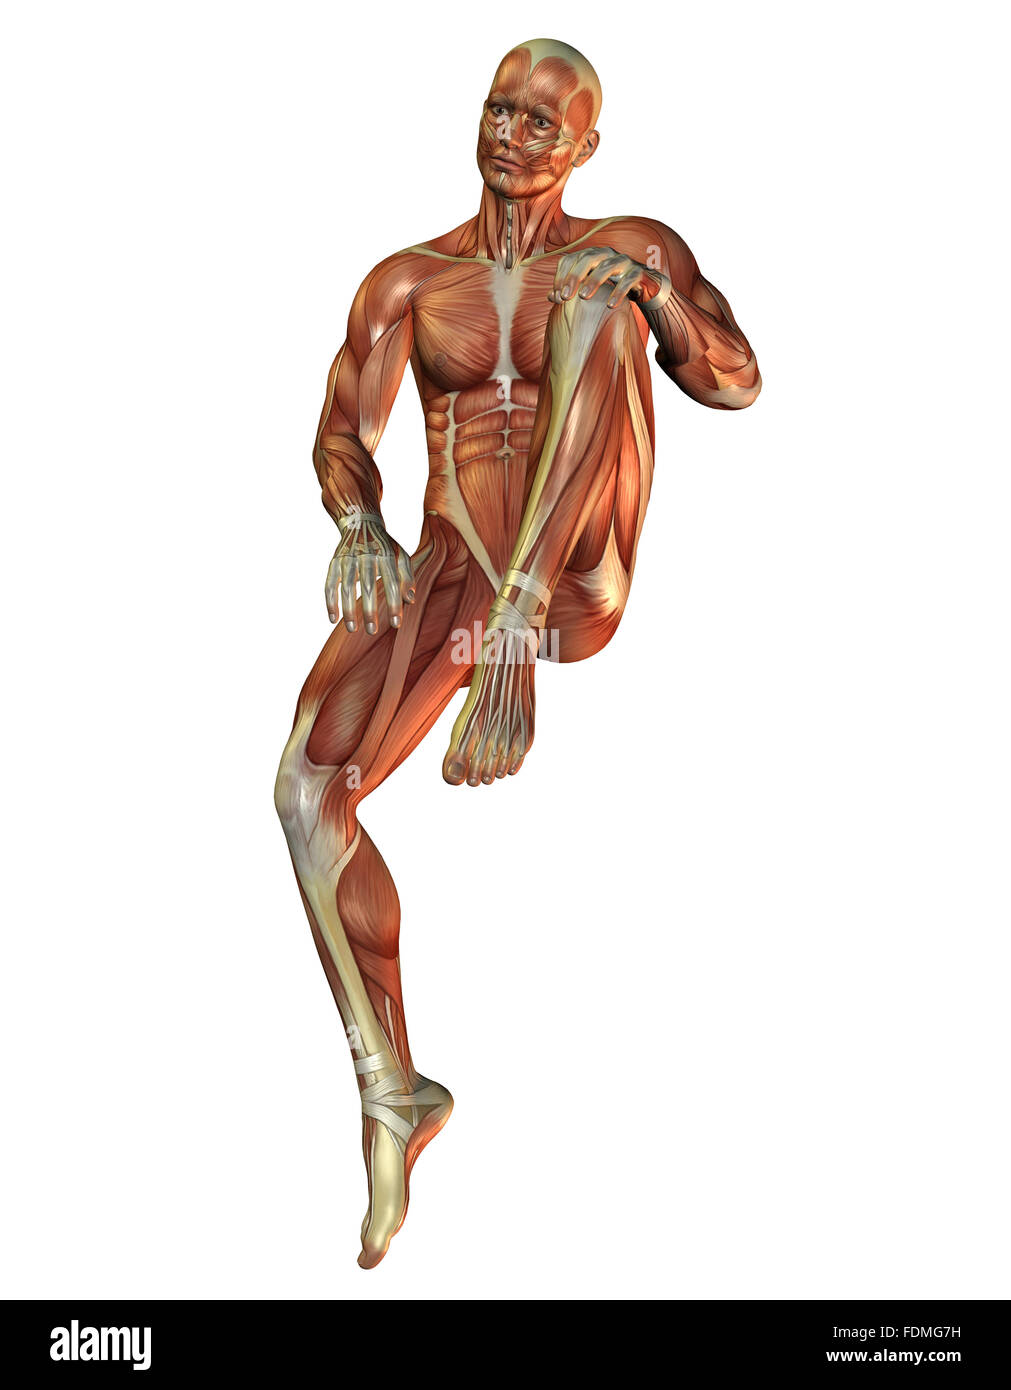 Muscle anatomie,médical,illustrations Photo Stock